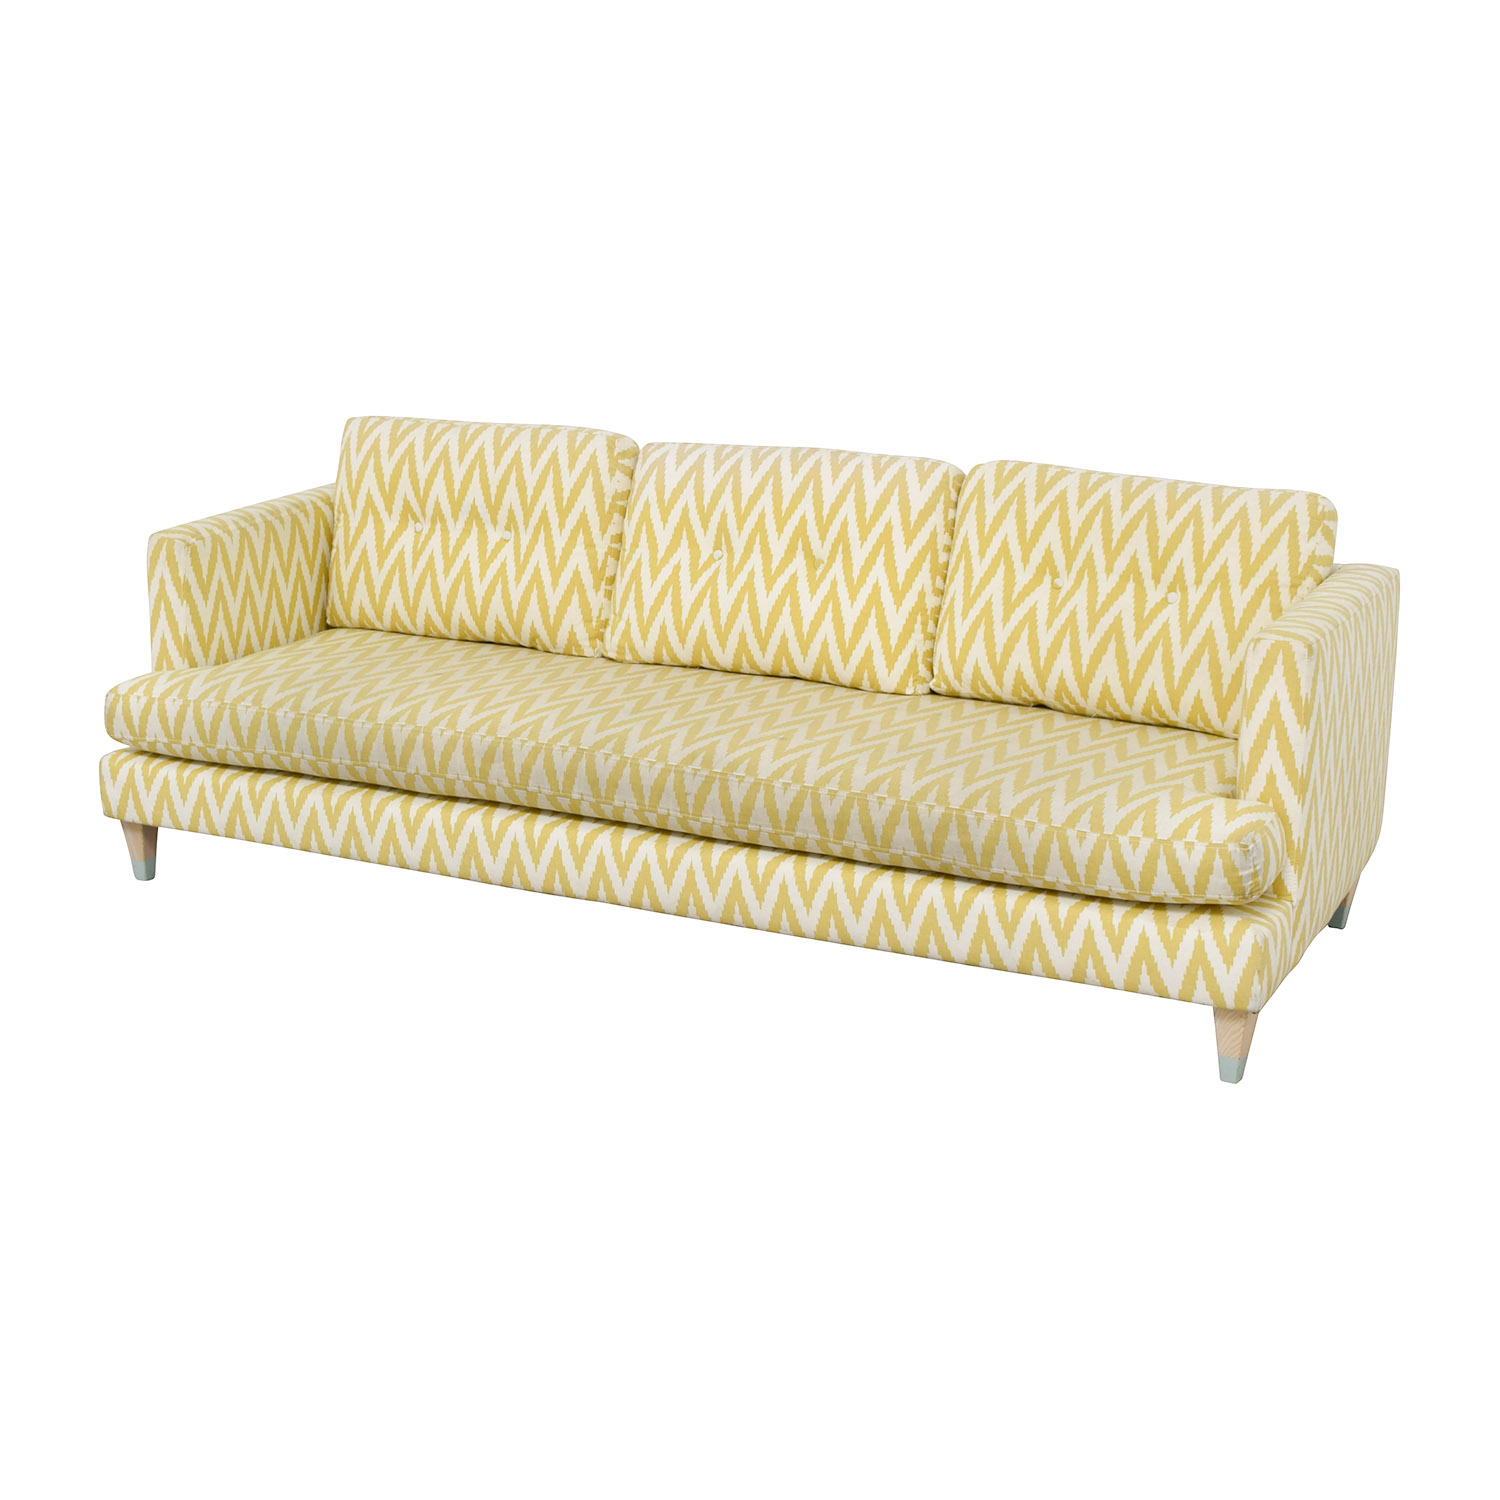 West Elm West Elm Yellow and White Single Cushion Sofa price